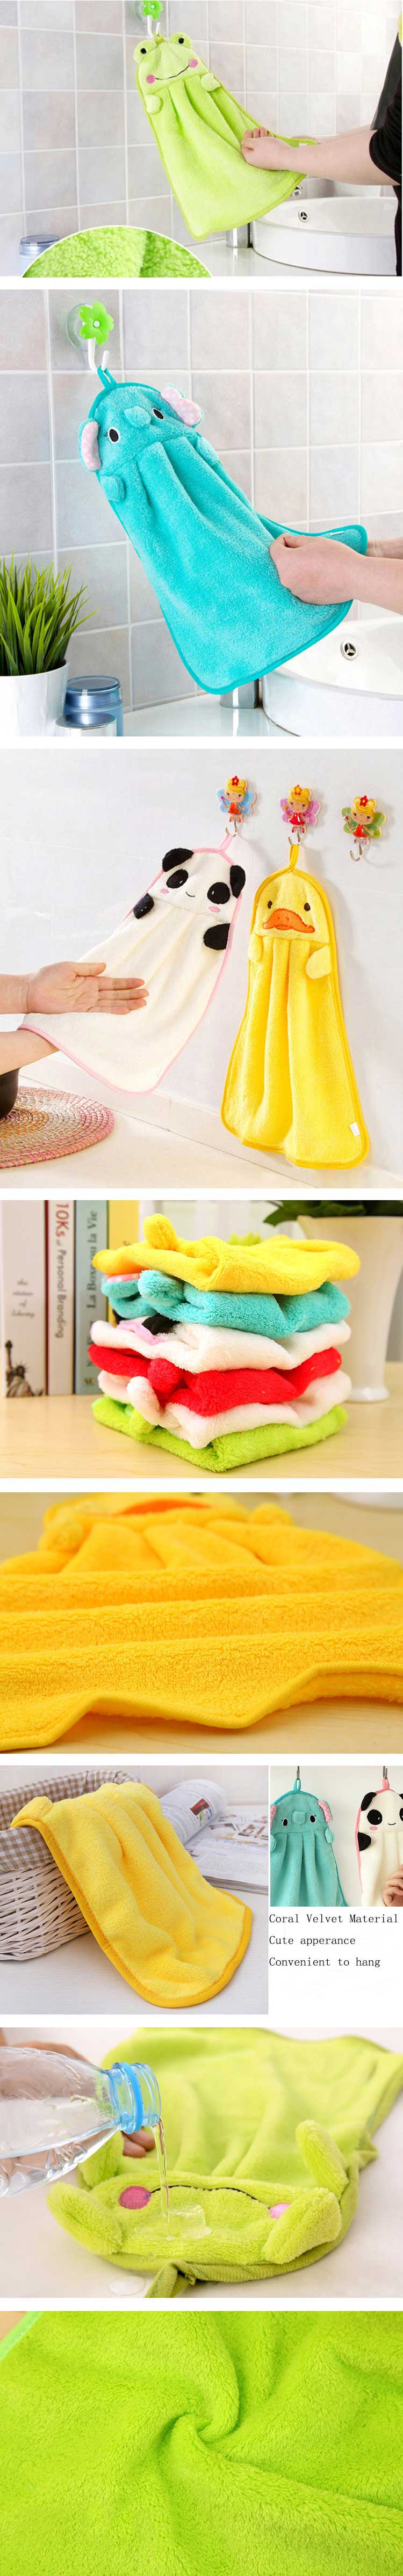 Coral Velvet Bamboo Charcoal Fiber Hand Towel Absorbent Cartoon Hand Towel